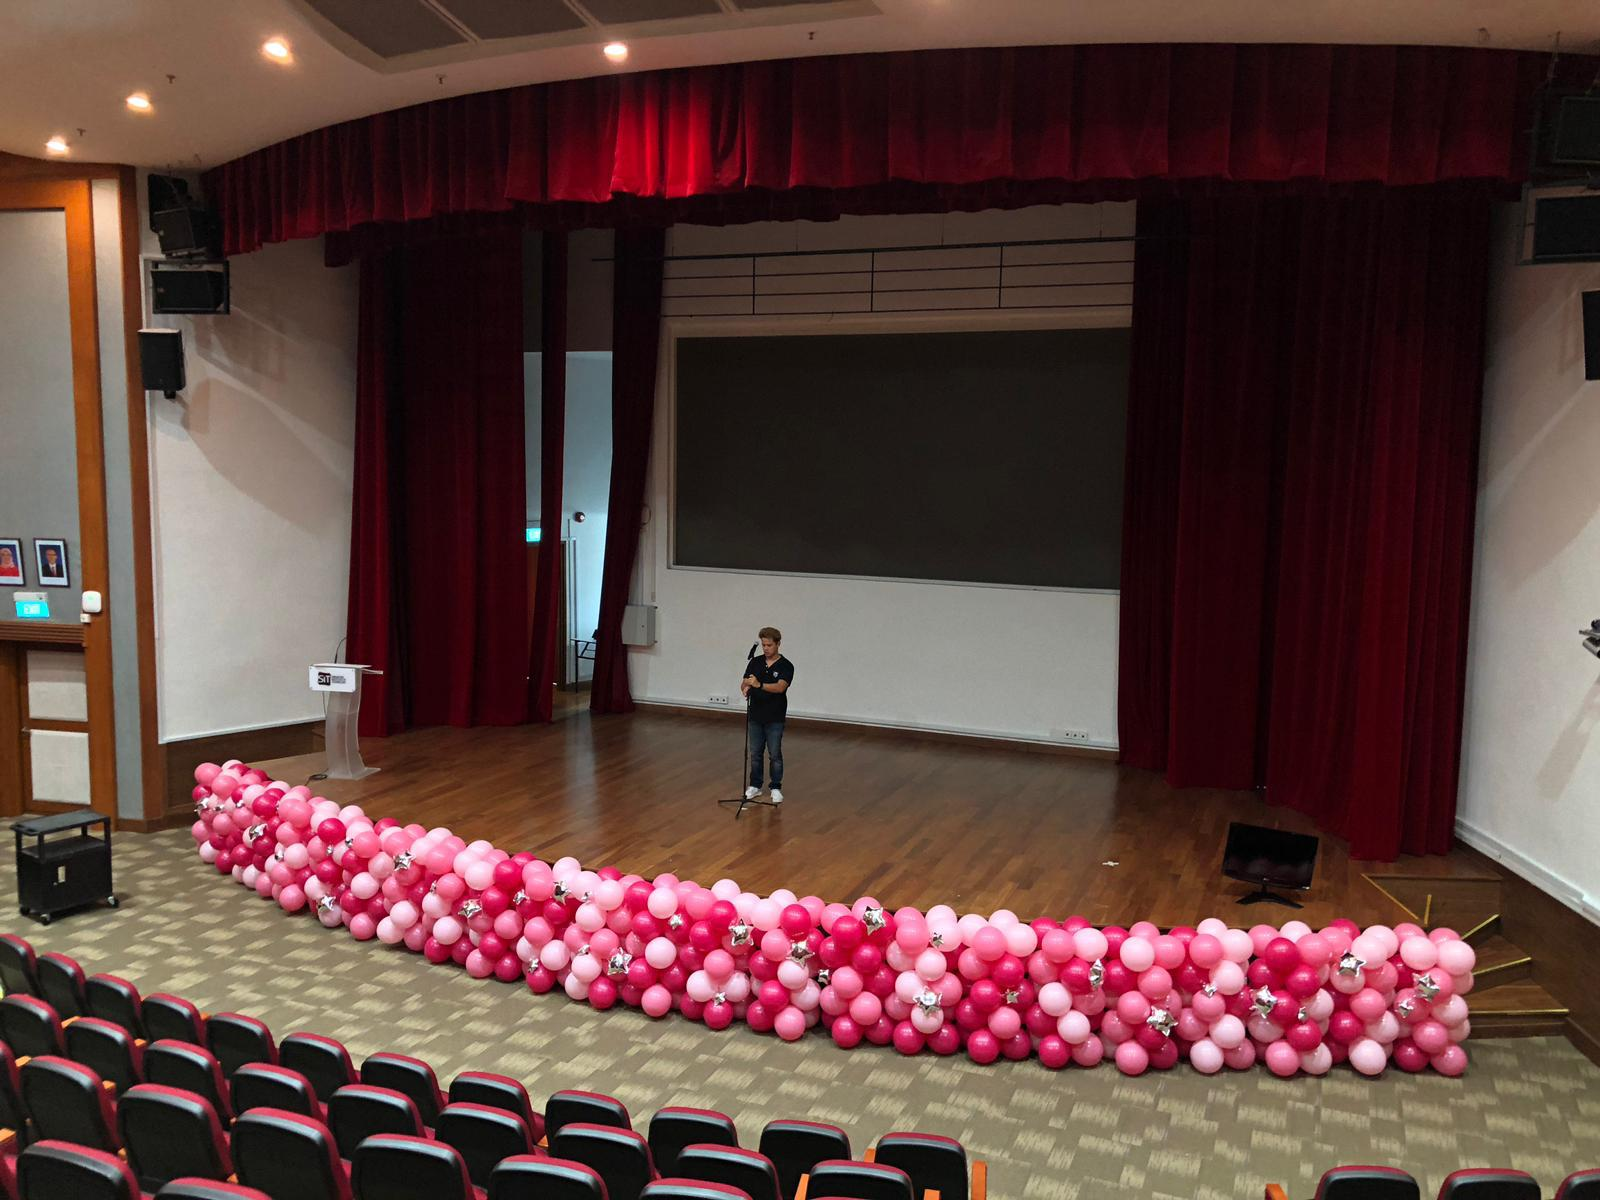 Balloon Decoration at Stage Front